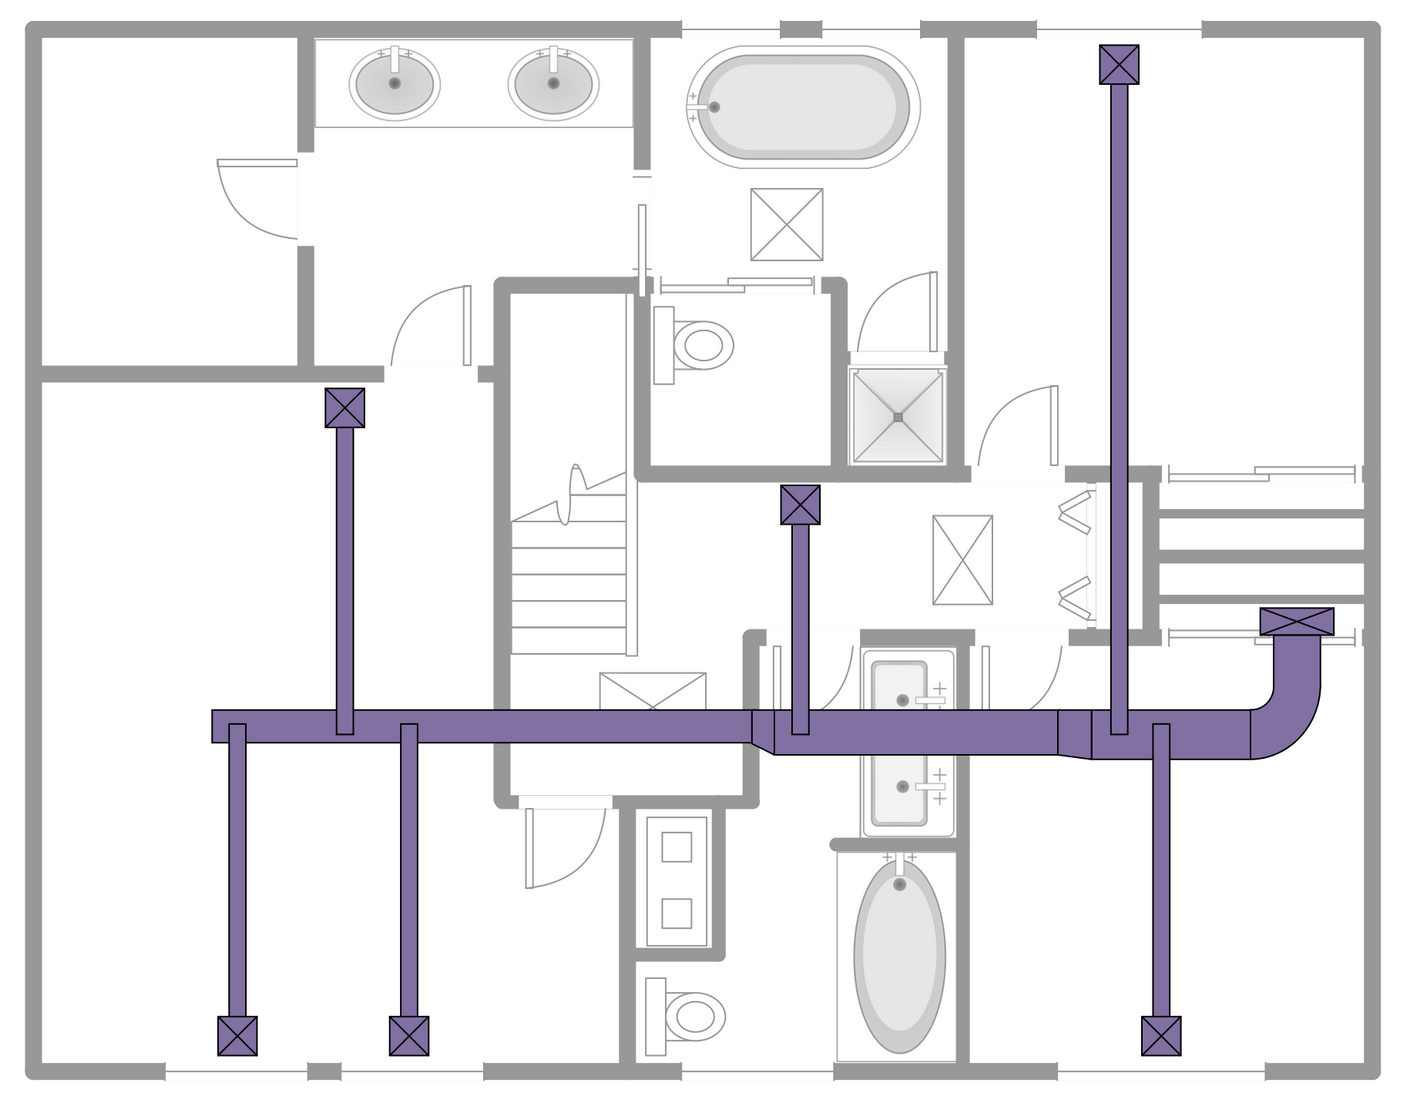 Basement Layout Planner Hvac Plans Solution Conceptdraw Com